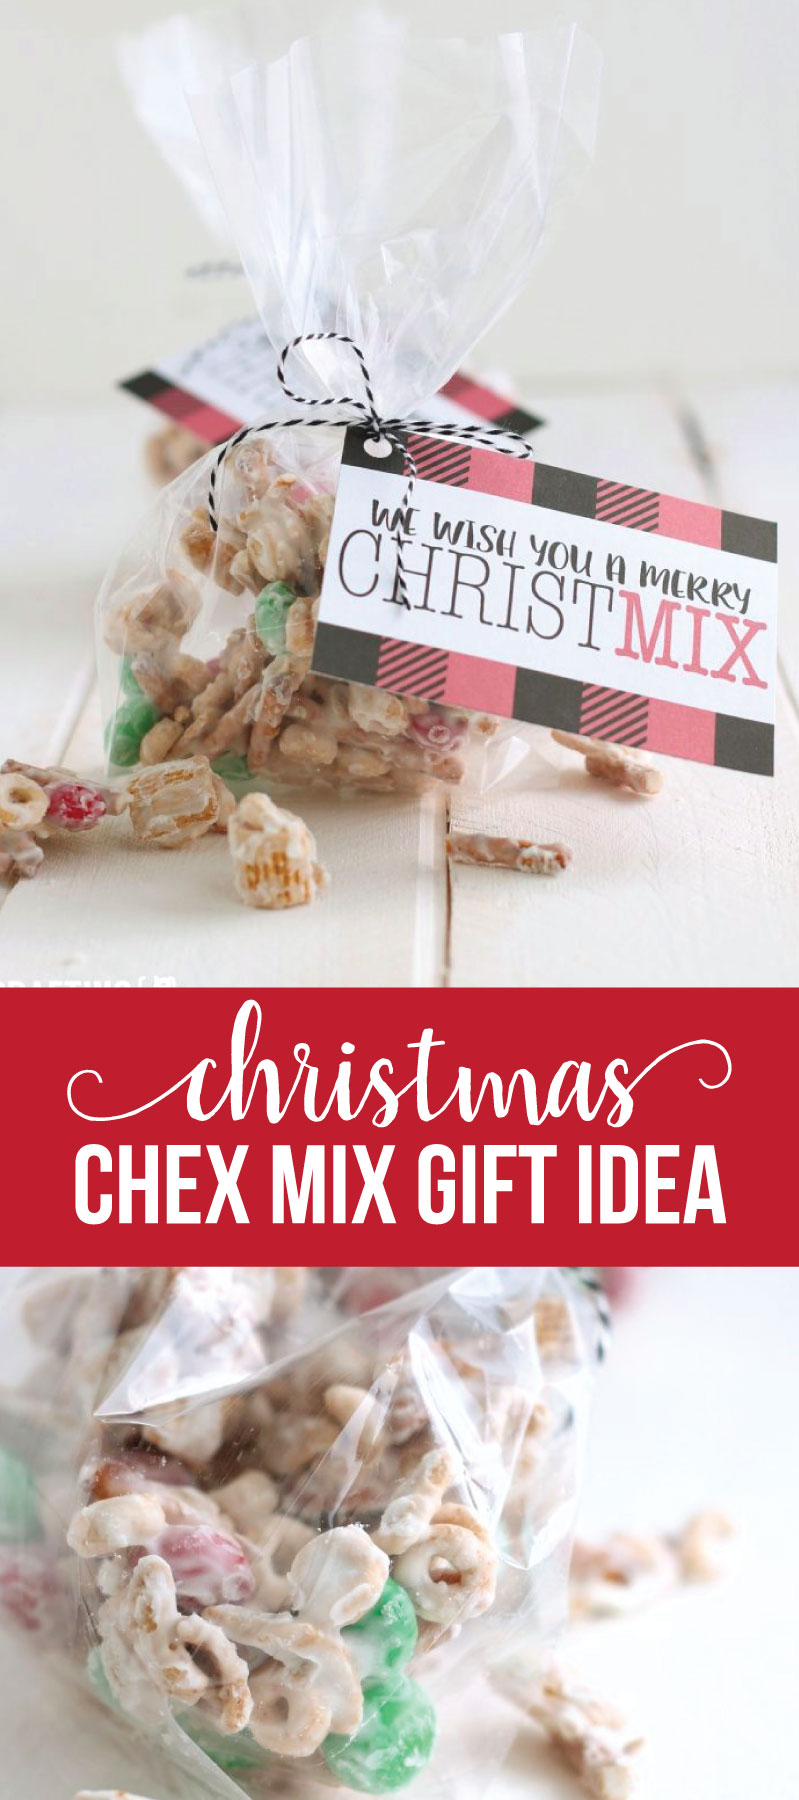 Want to make your friends and neighbors feel special but not brake the bank? Make these cheap Christmas gifts and deliver to them! Christmas Chex Mix plus printable via www.thirtyhandmadedays.com